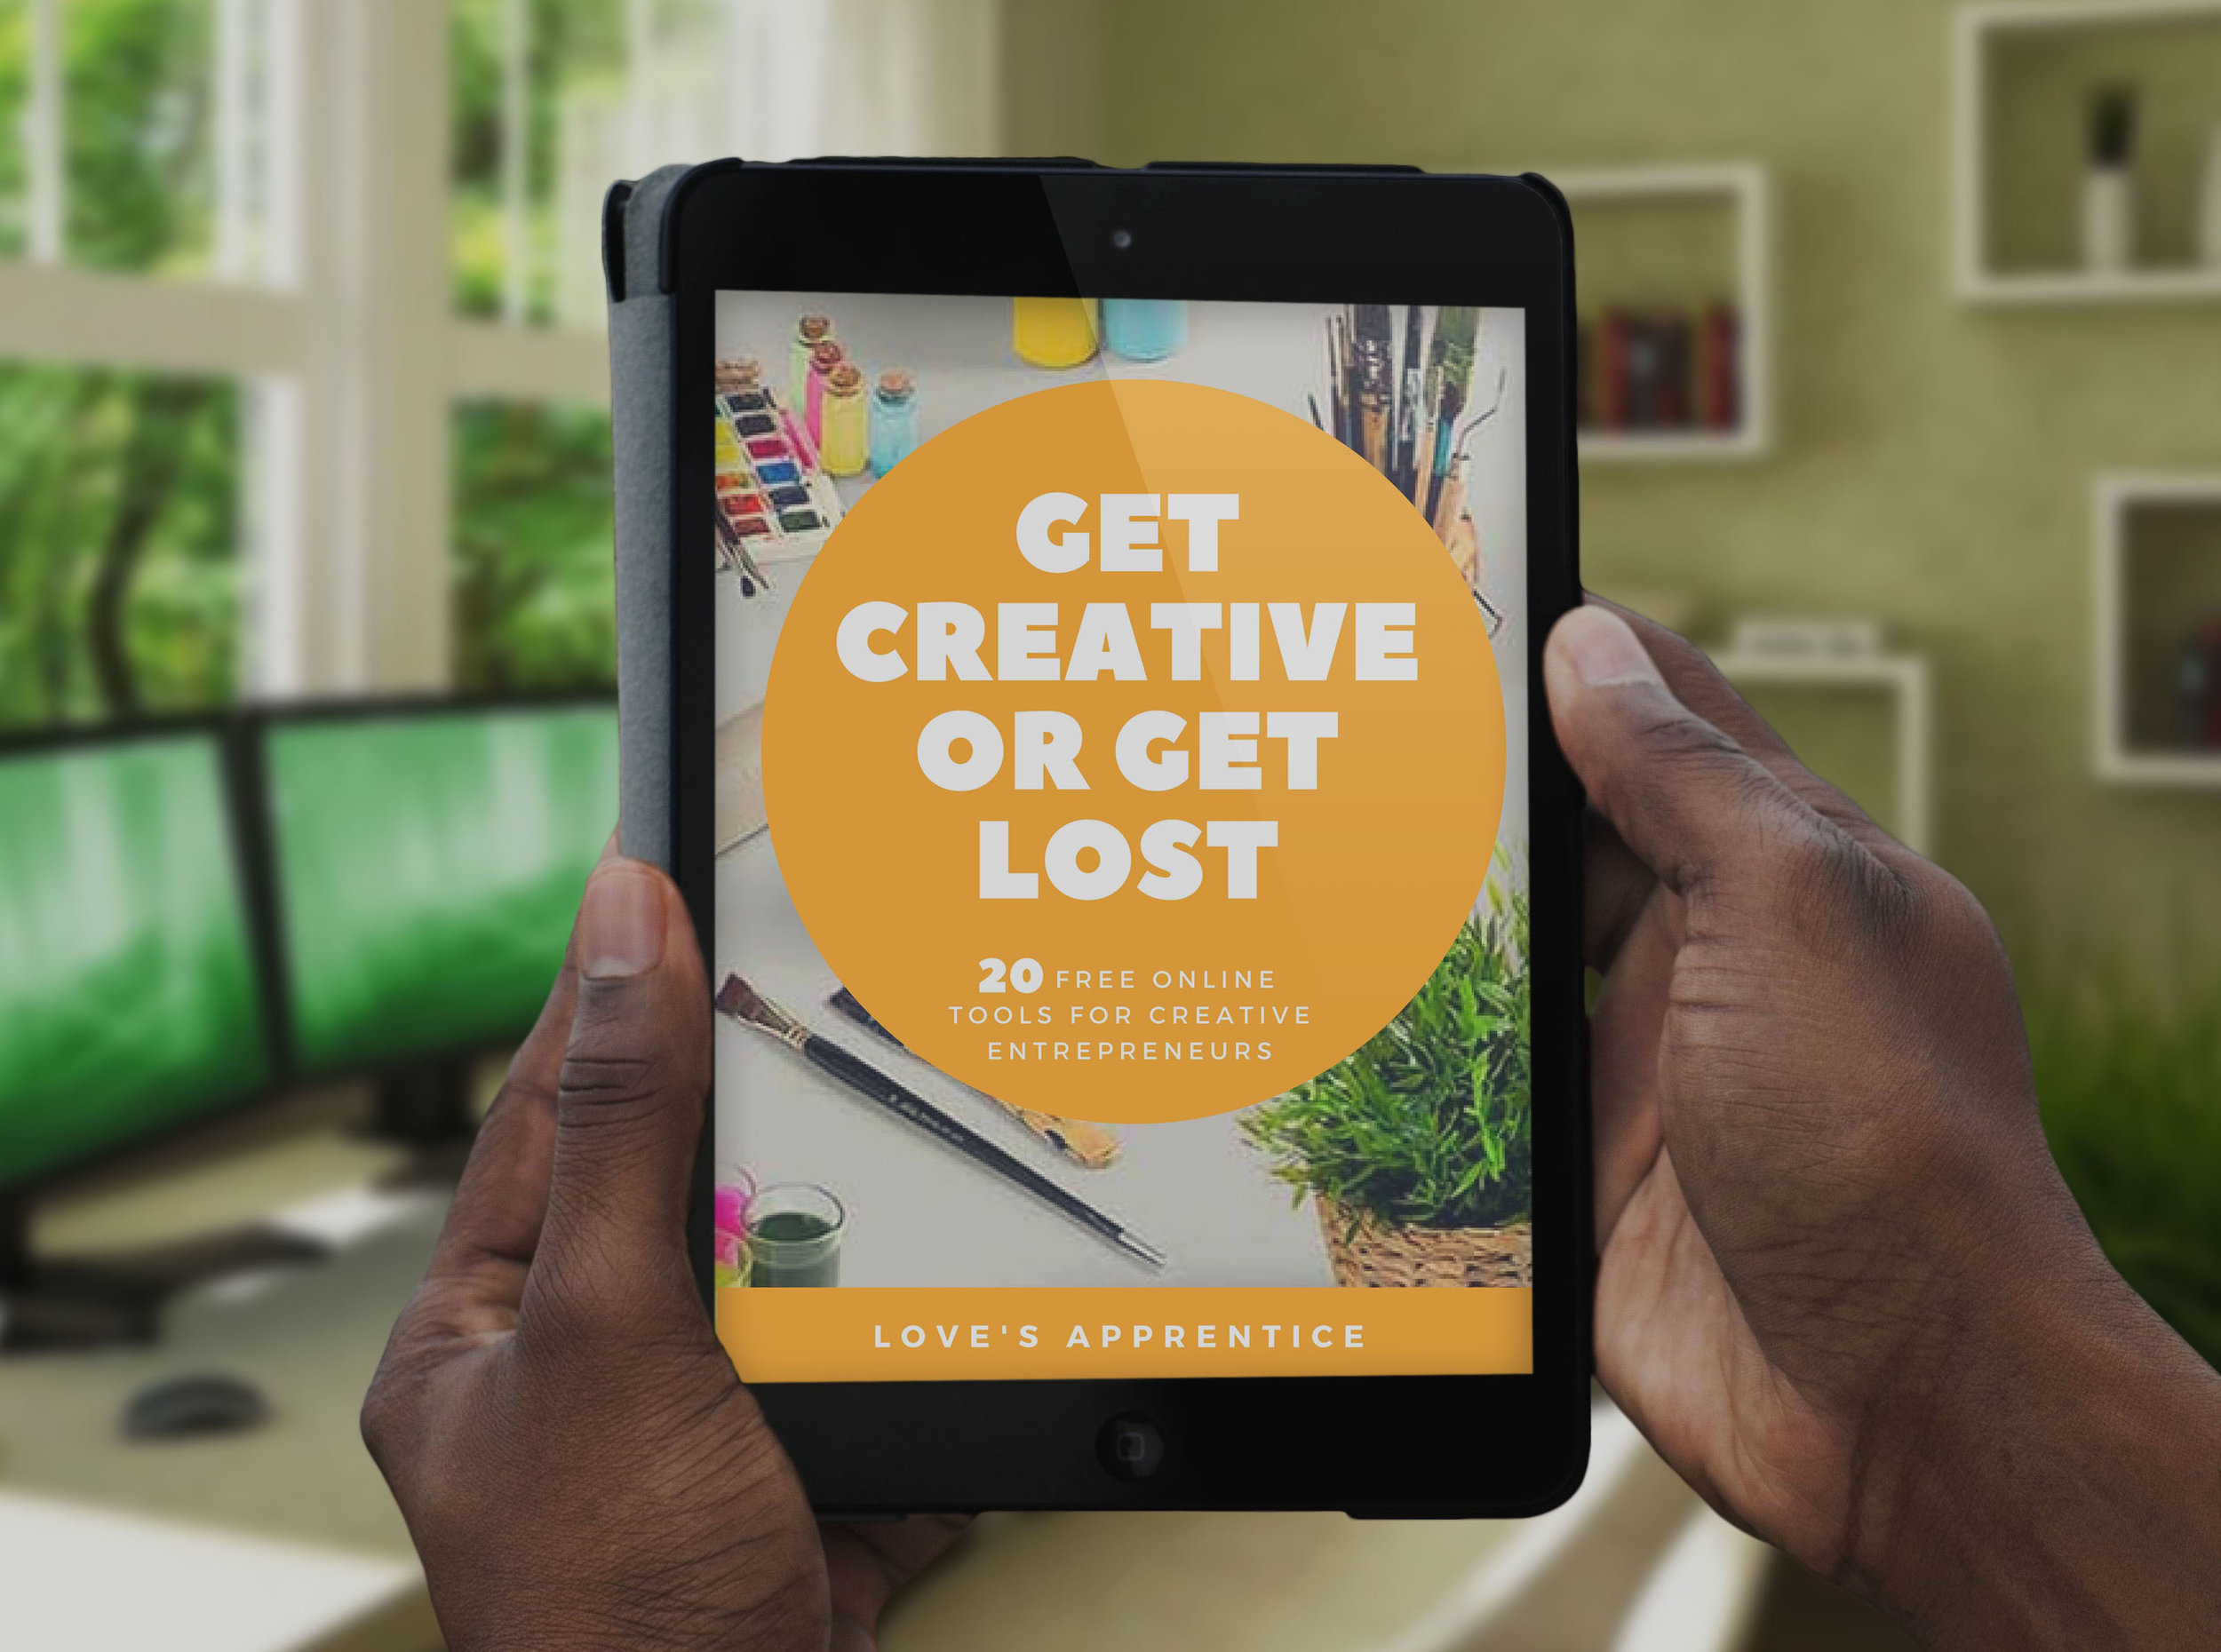 Get access to 20 free online tools that will catapult your creative business and boost your productivity! - Sign Up